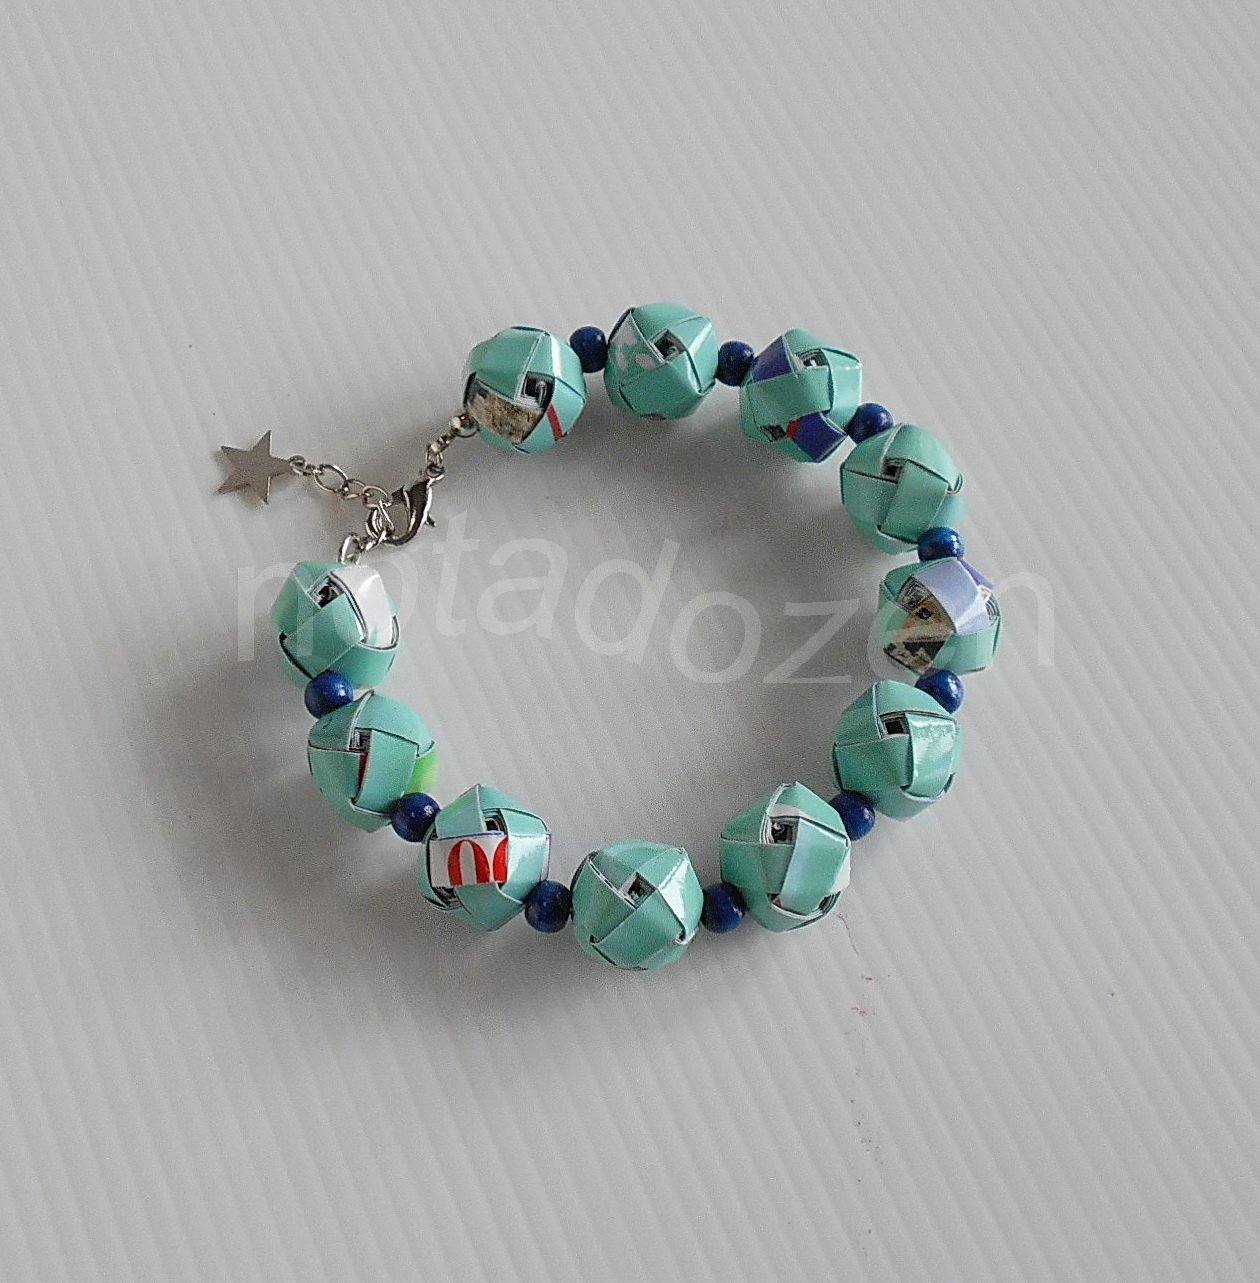 Upcycled bluish green woven paper ball and blue wooden beads Bracelet #6- Handmade Jewelry